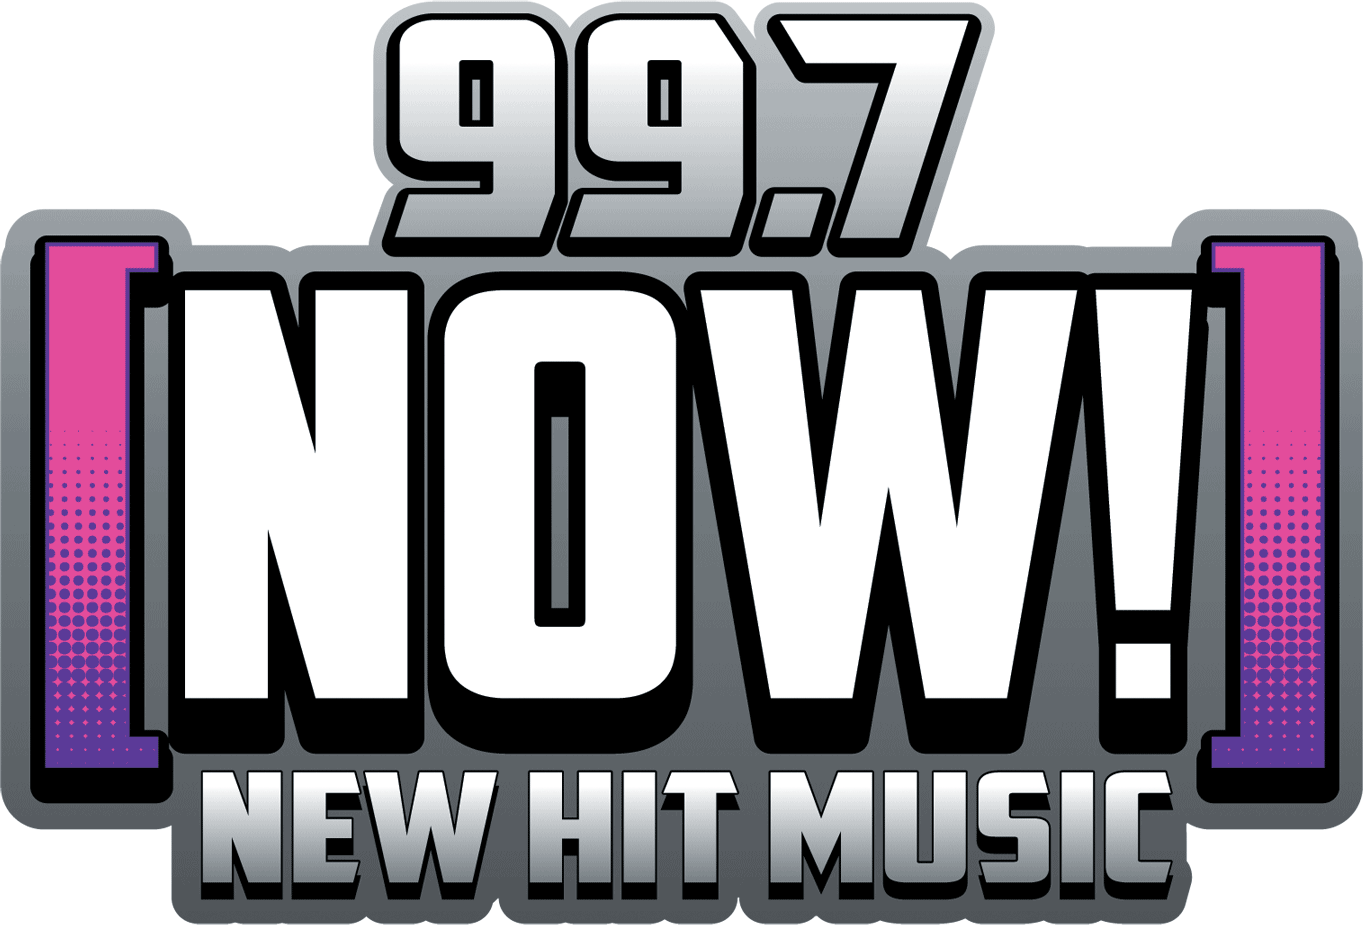 997now_logo.png